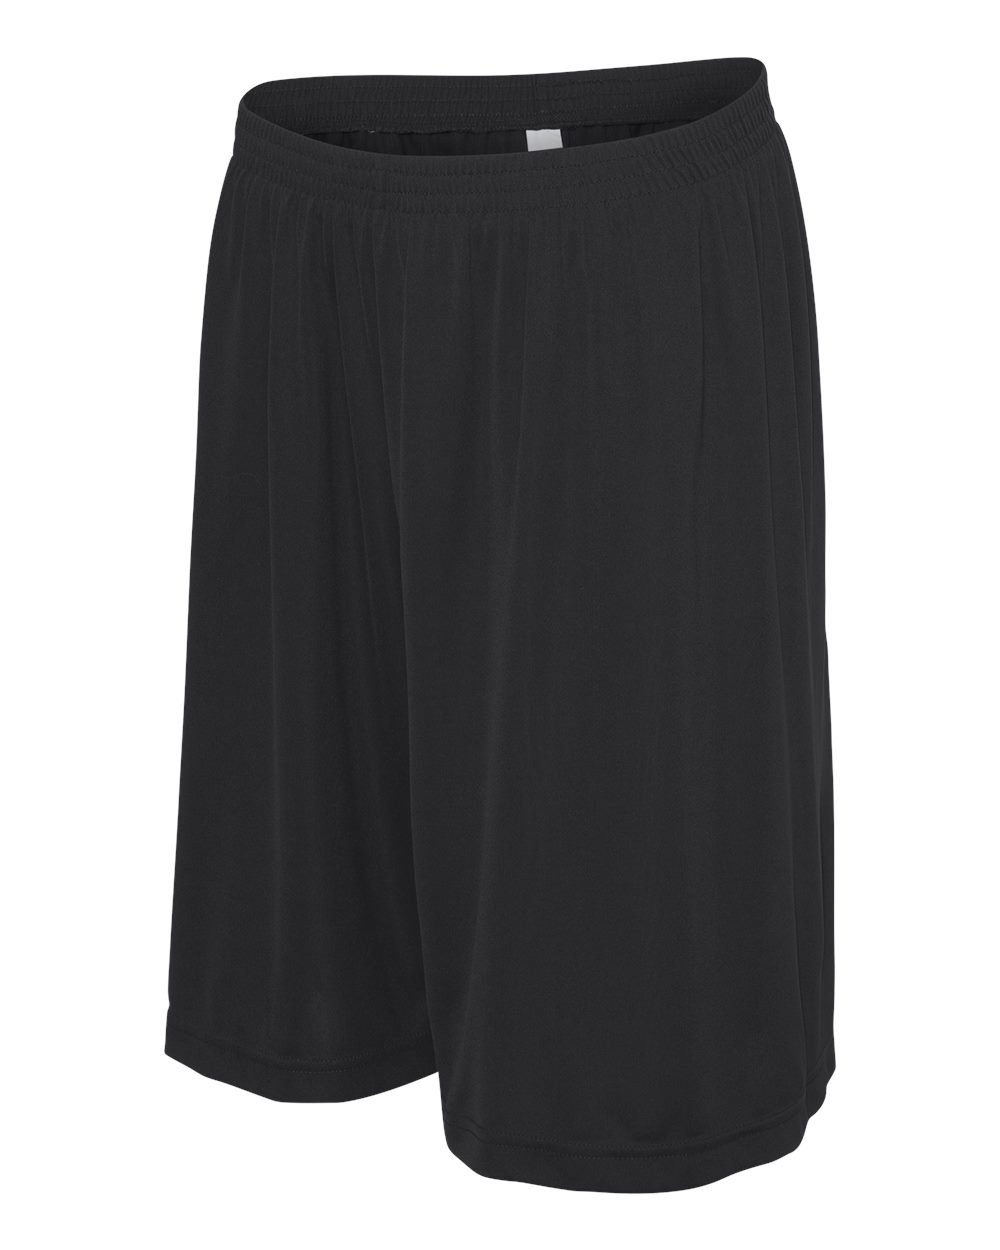 5d9281023485 DRI-Equip Youth Moisture Wicking All Sports Shorts in 8 Colors Black